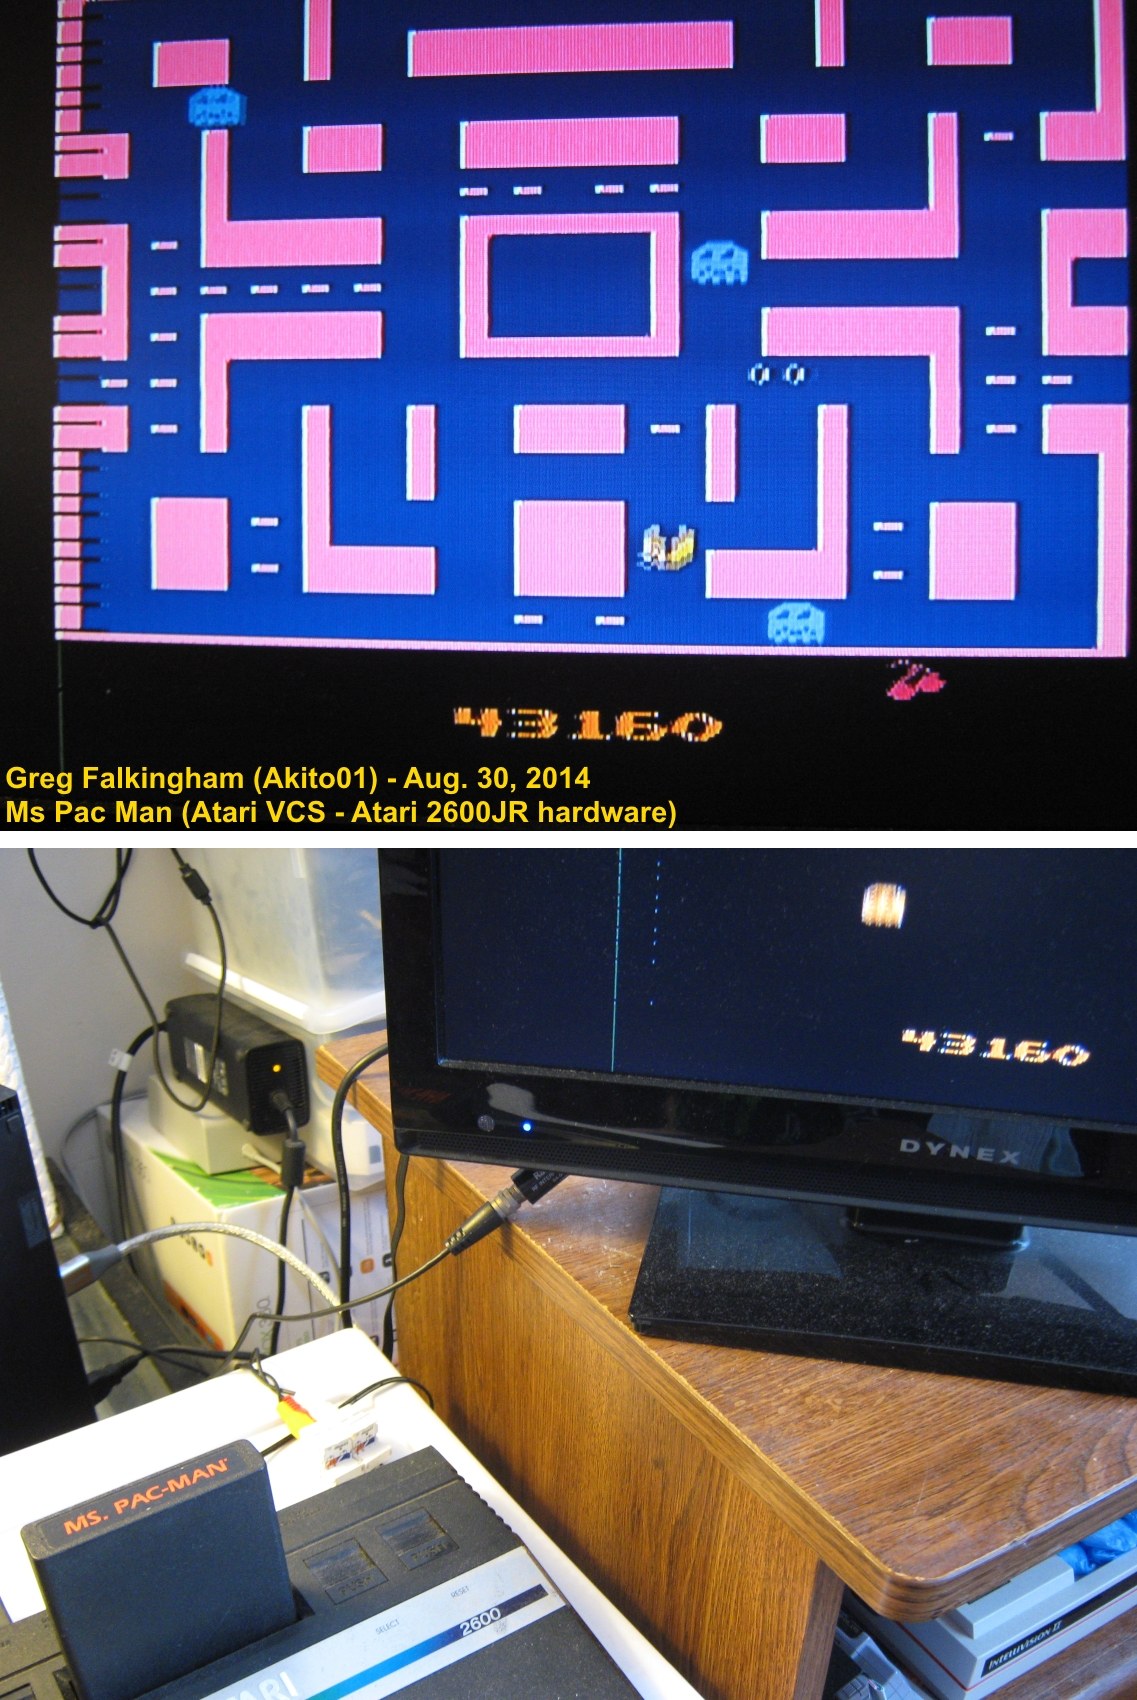 Ms. Pac-Man 43,160 points